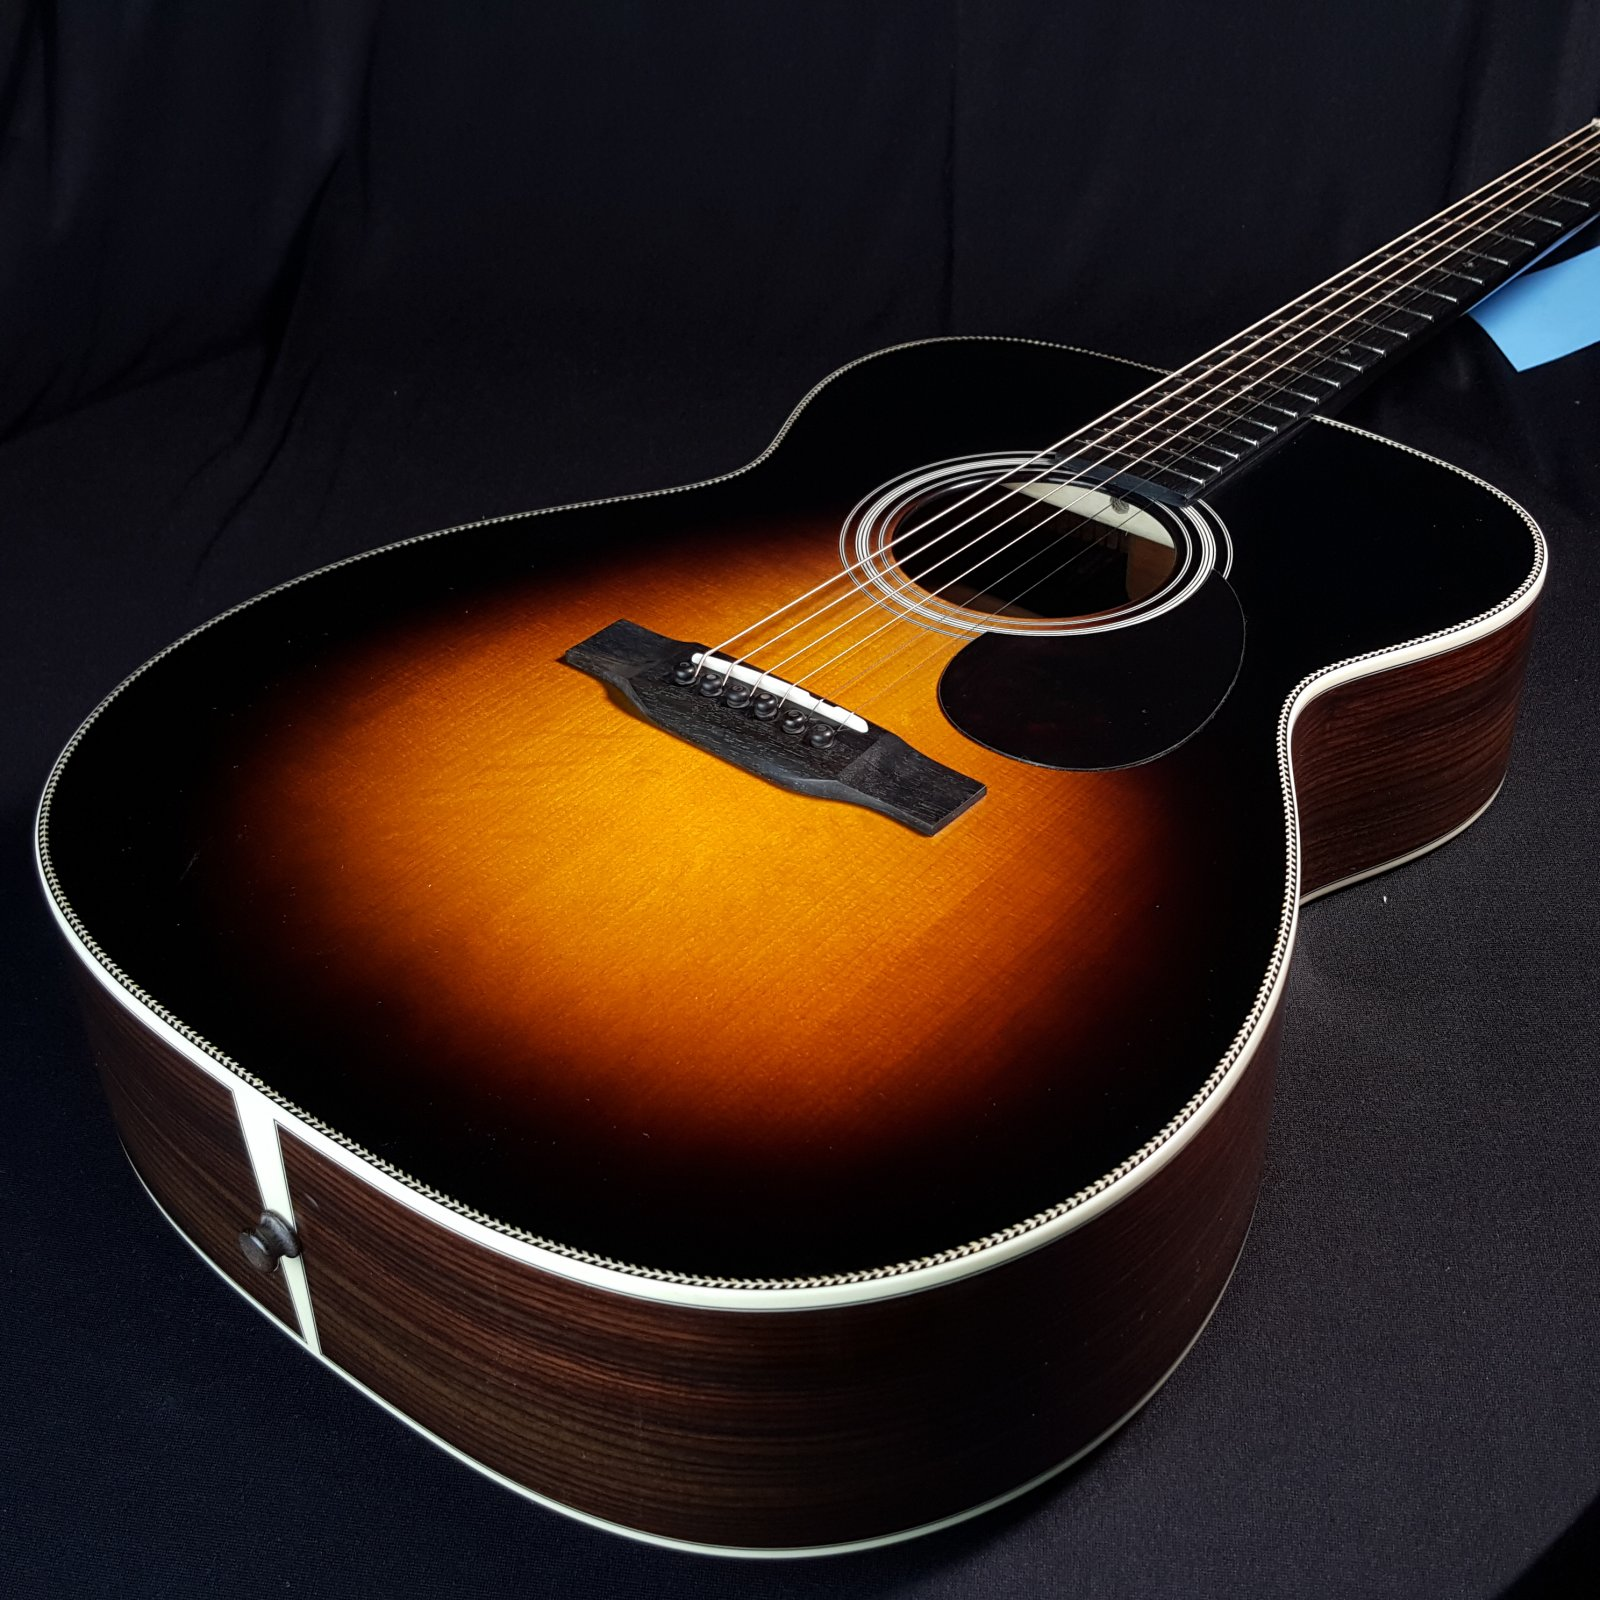 Eastman E20OM Sunburst Acoustic Guitar with Case 6285